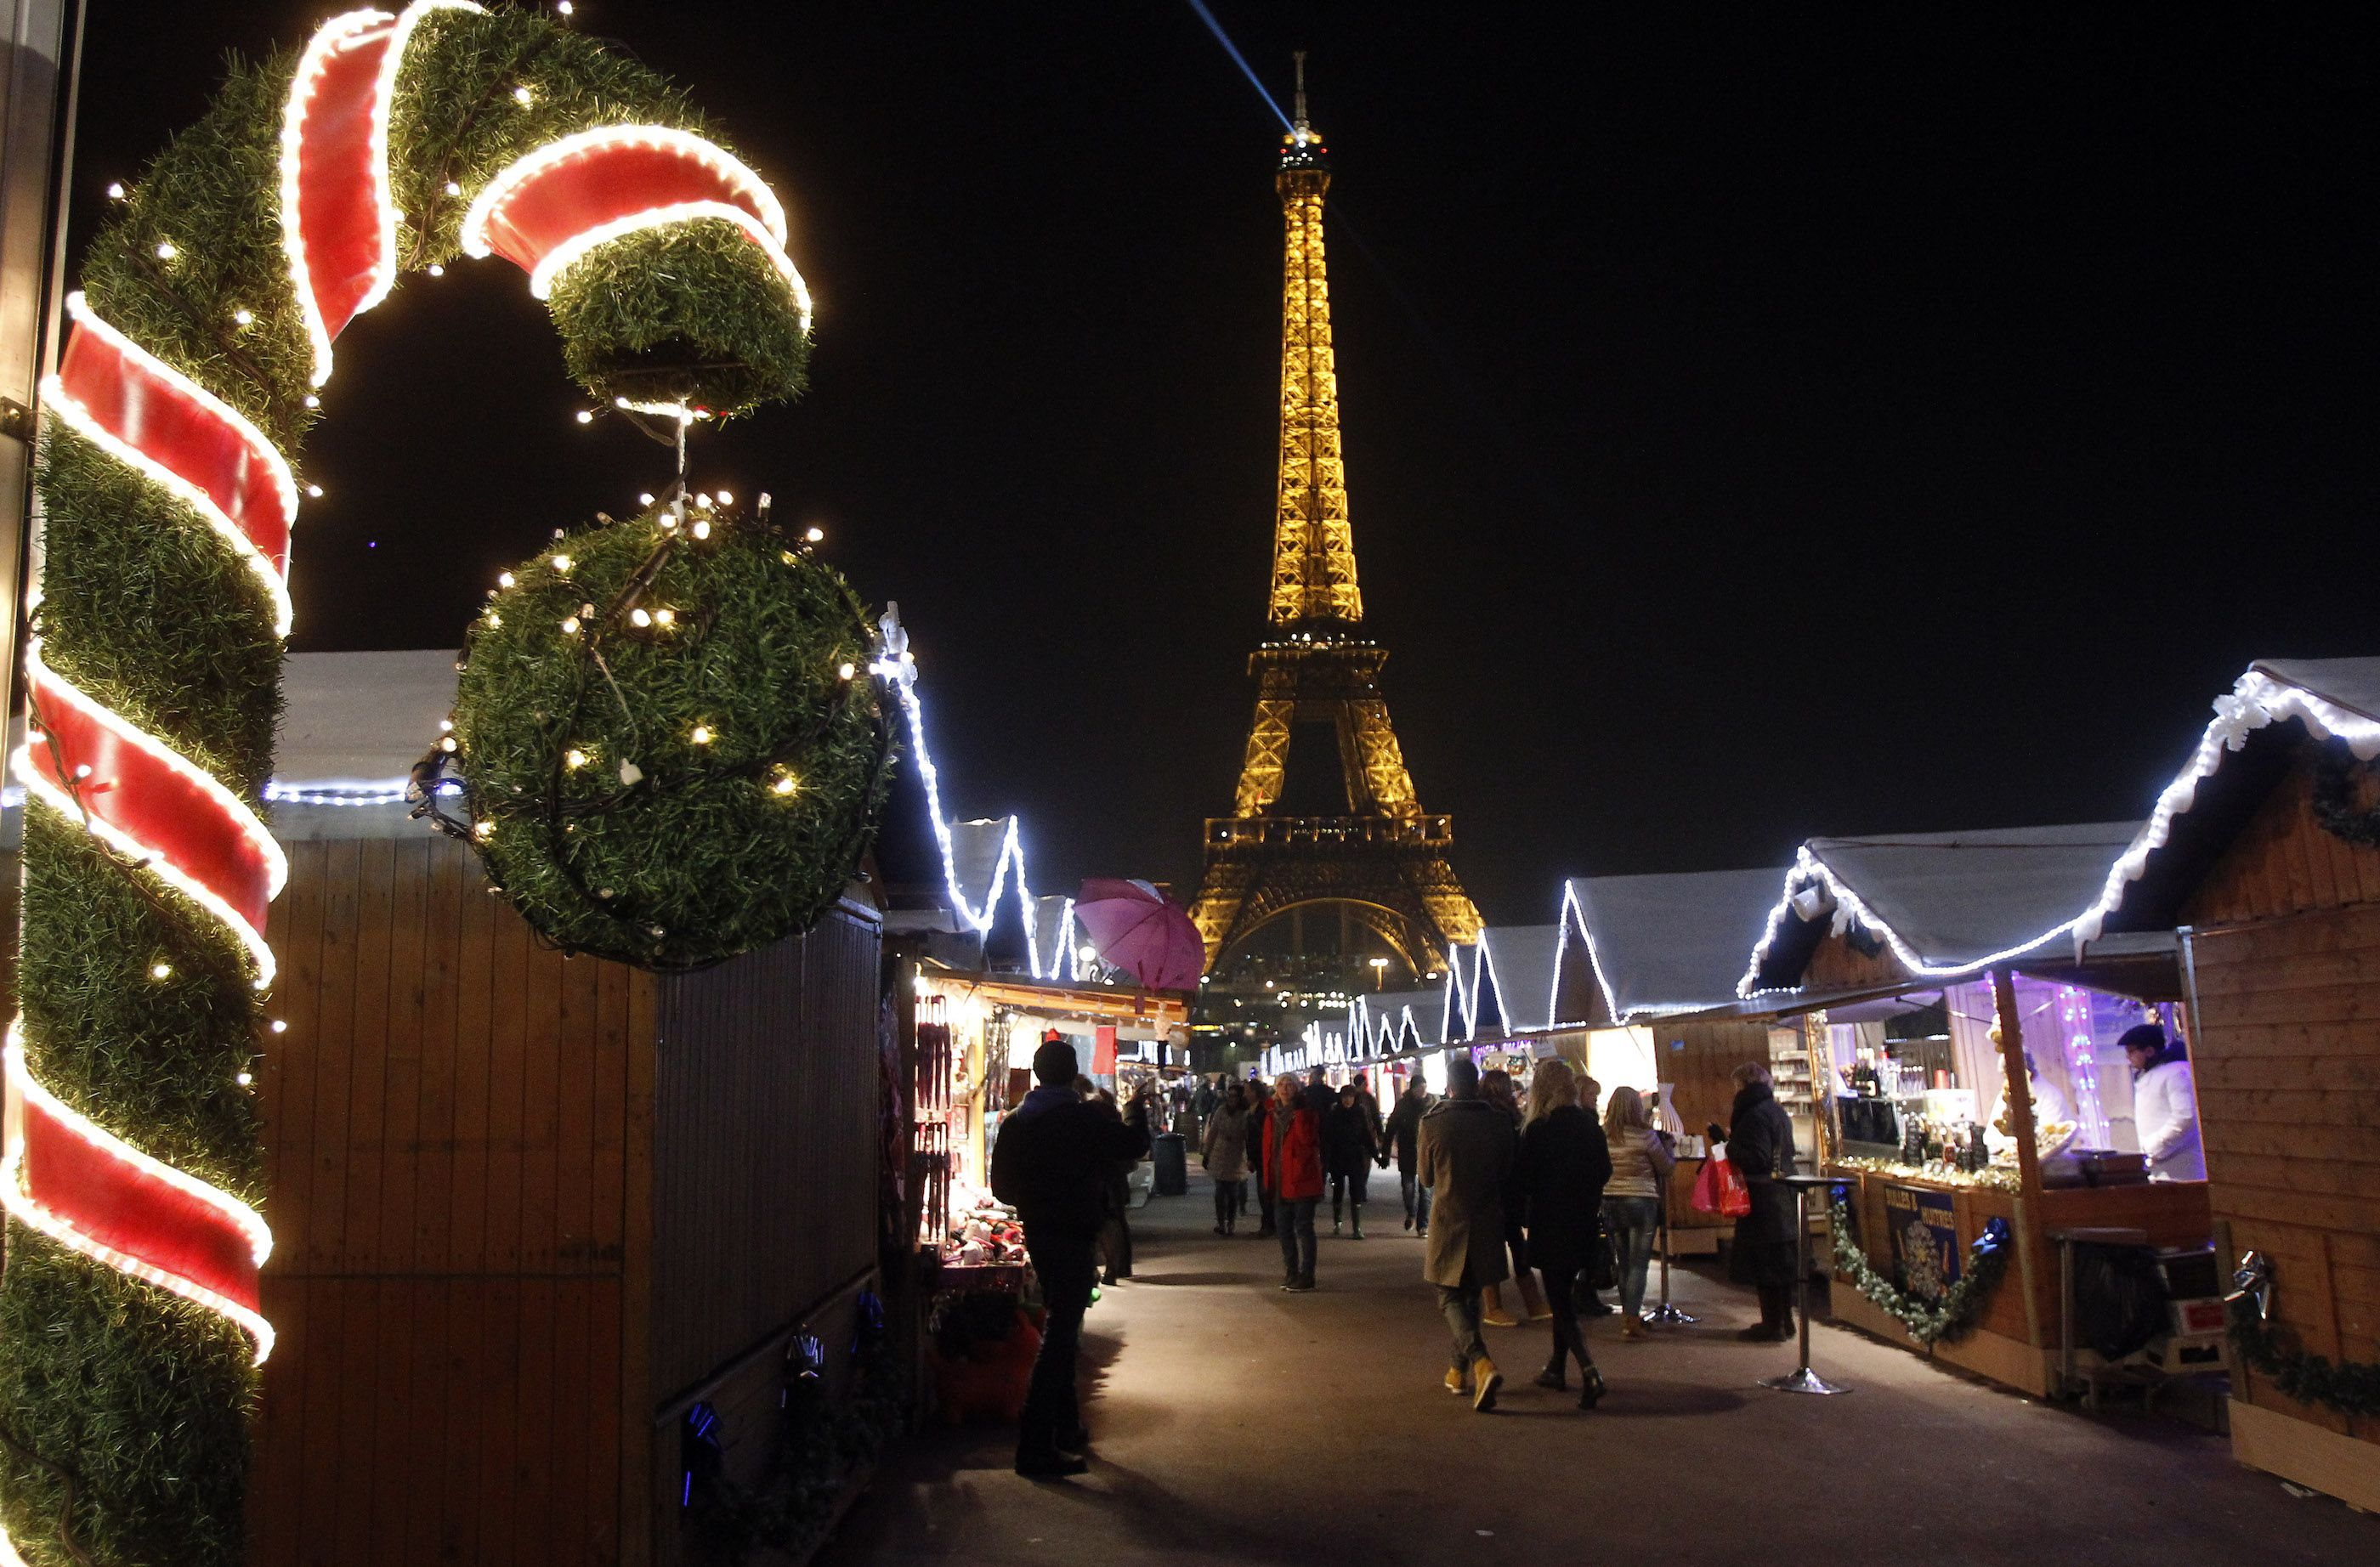 Paris Christmas Markets: Holiday Cheer in 2016 and 2017